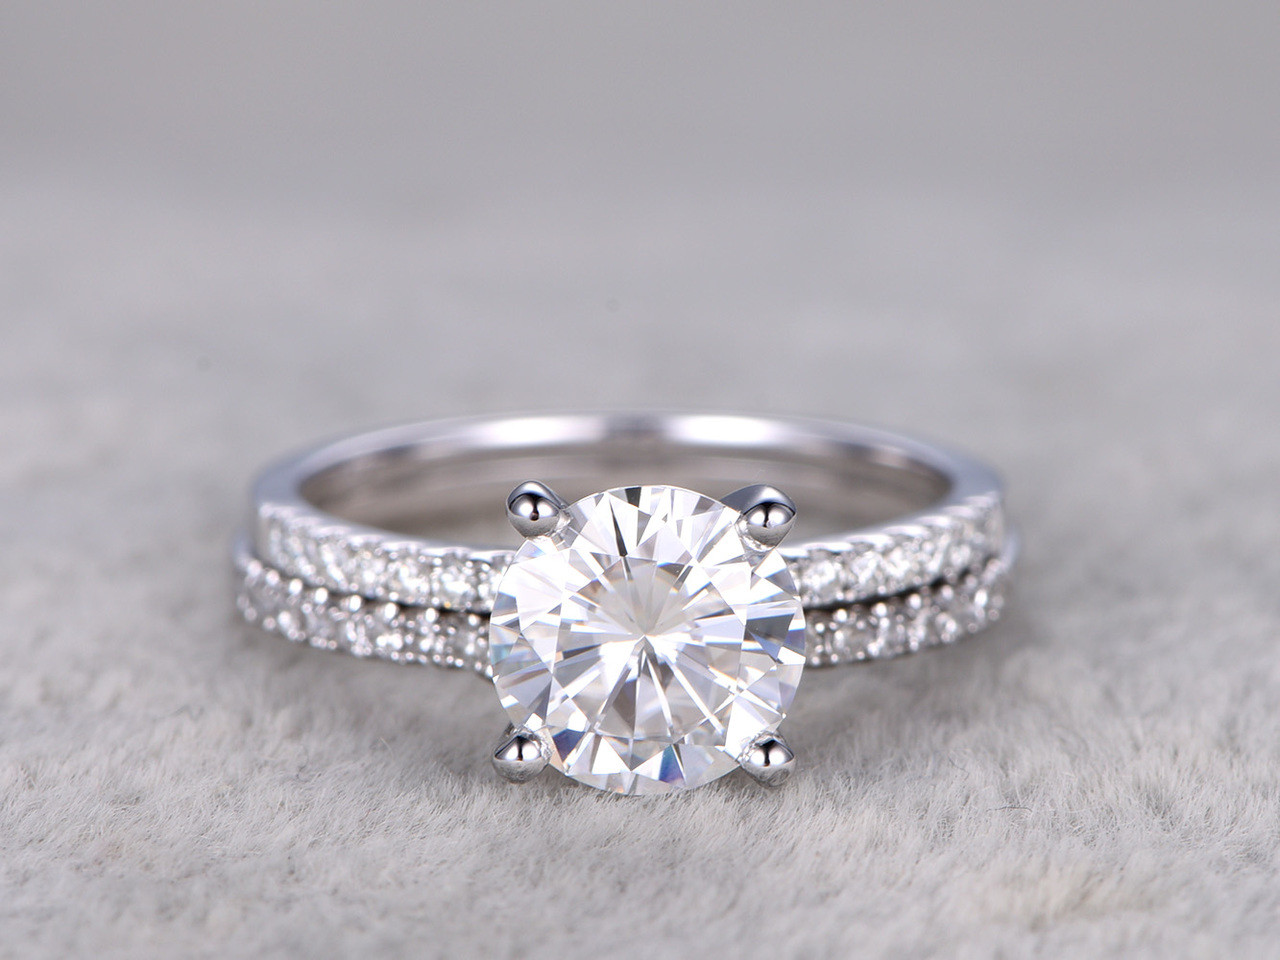 2 Carat Moissanite Engagement Ring Set Diamond Wedding Band White